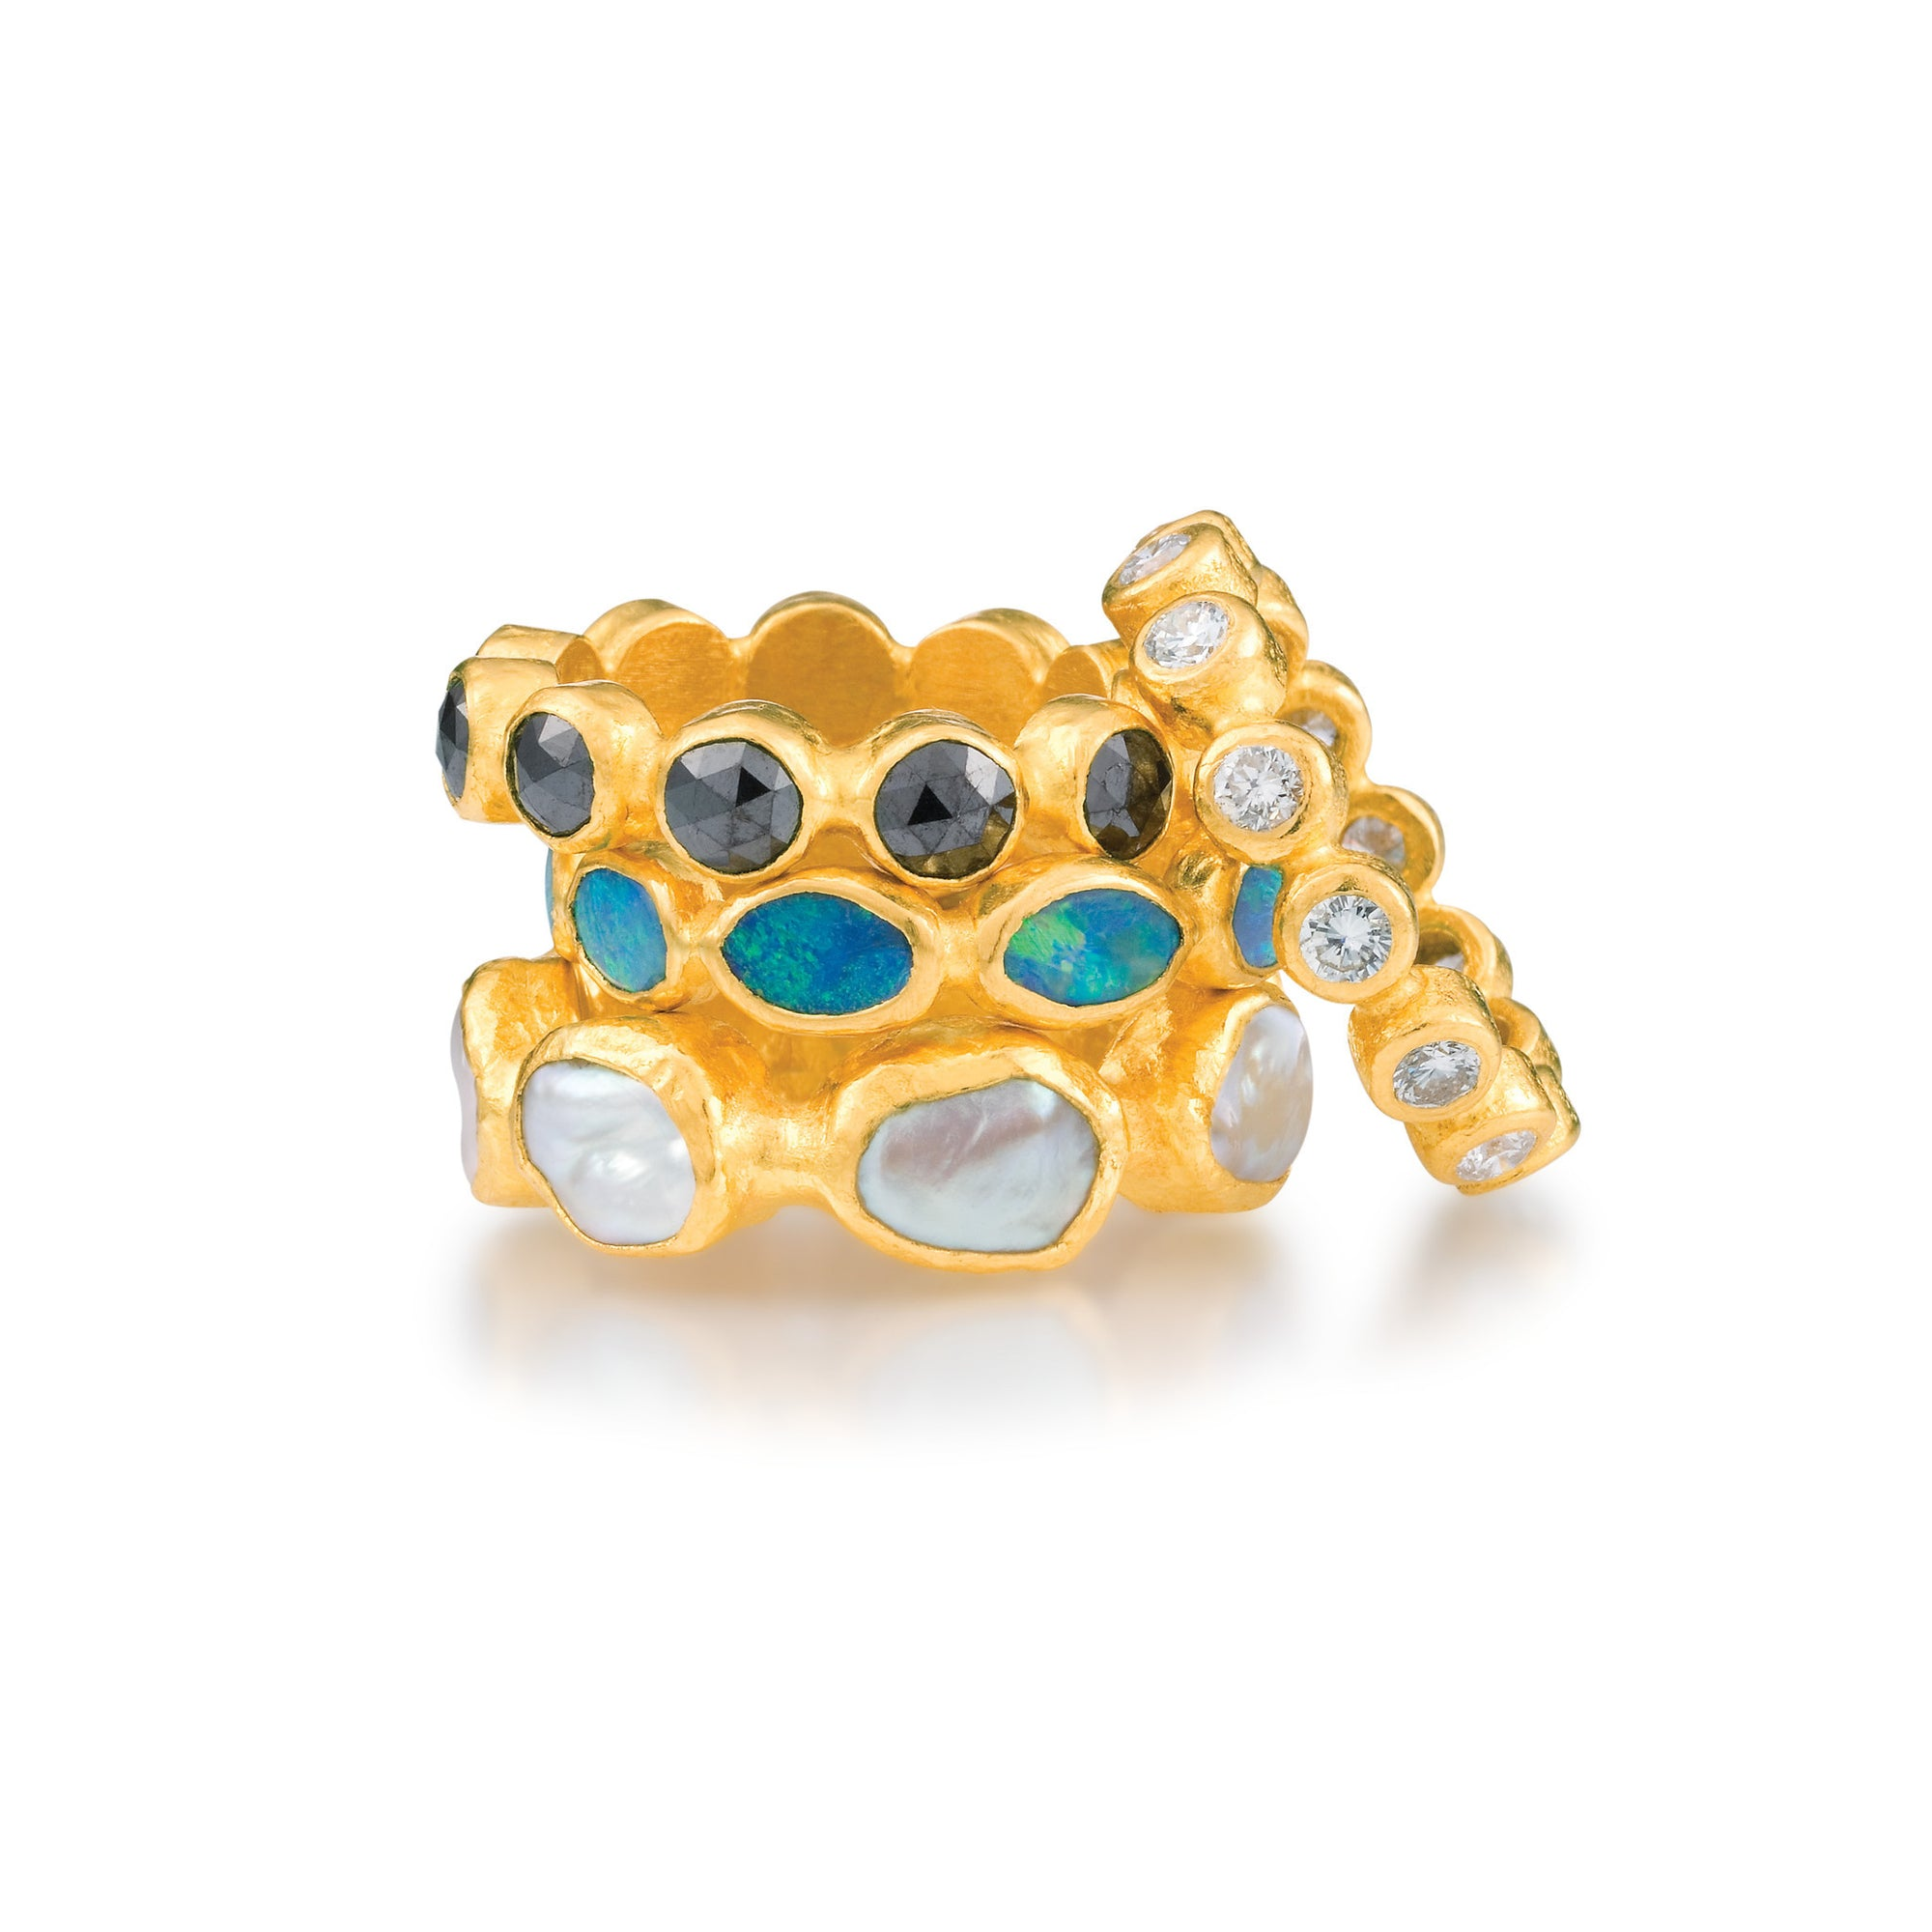 256692f2af6b5 ARA 24k Yellow Gold Stacking Rings with Black Diamond, Opal, Pearl, or  Diamond